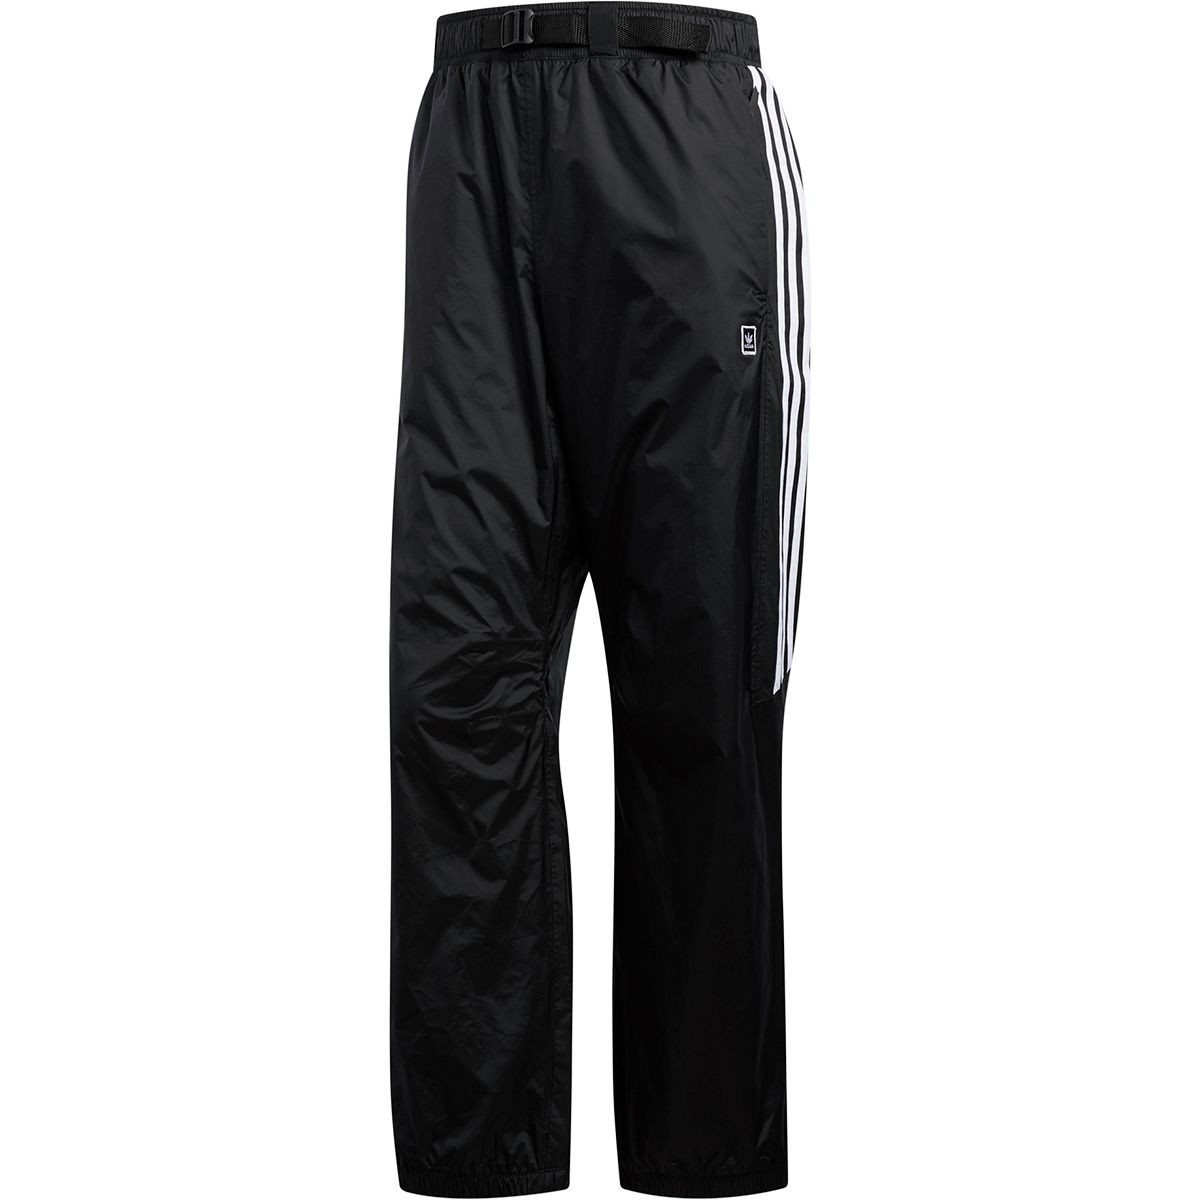 Adidas Slopetrotter Snowboard Pants BlackWhite